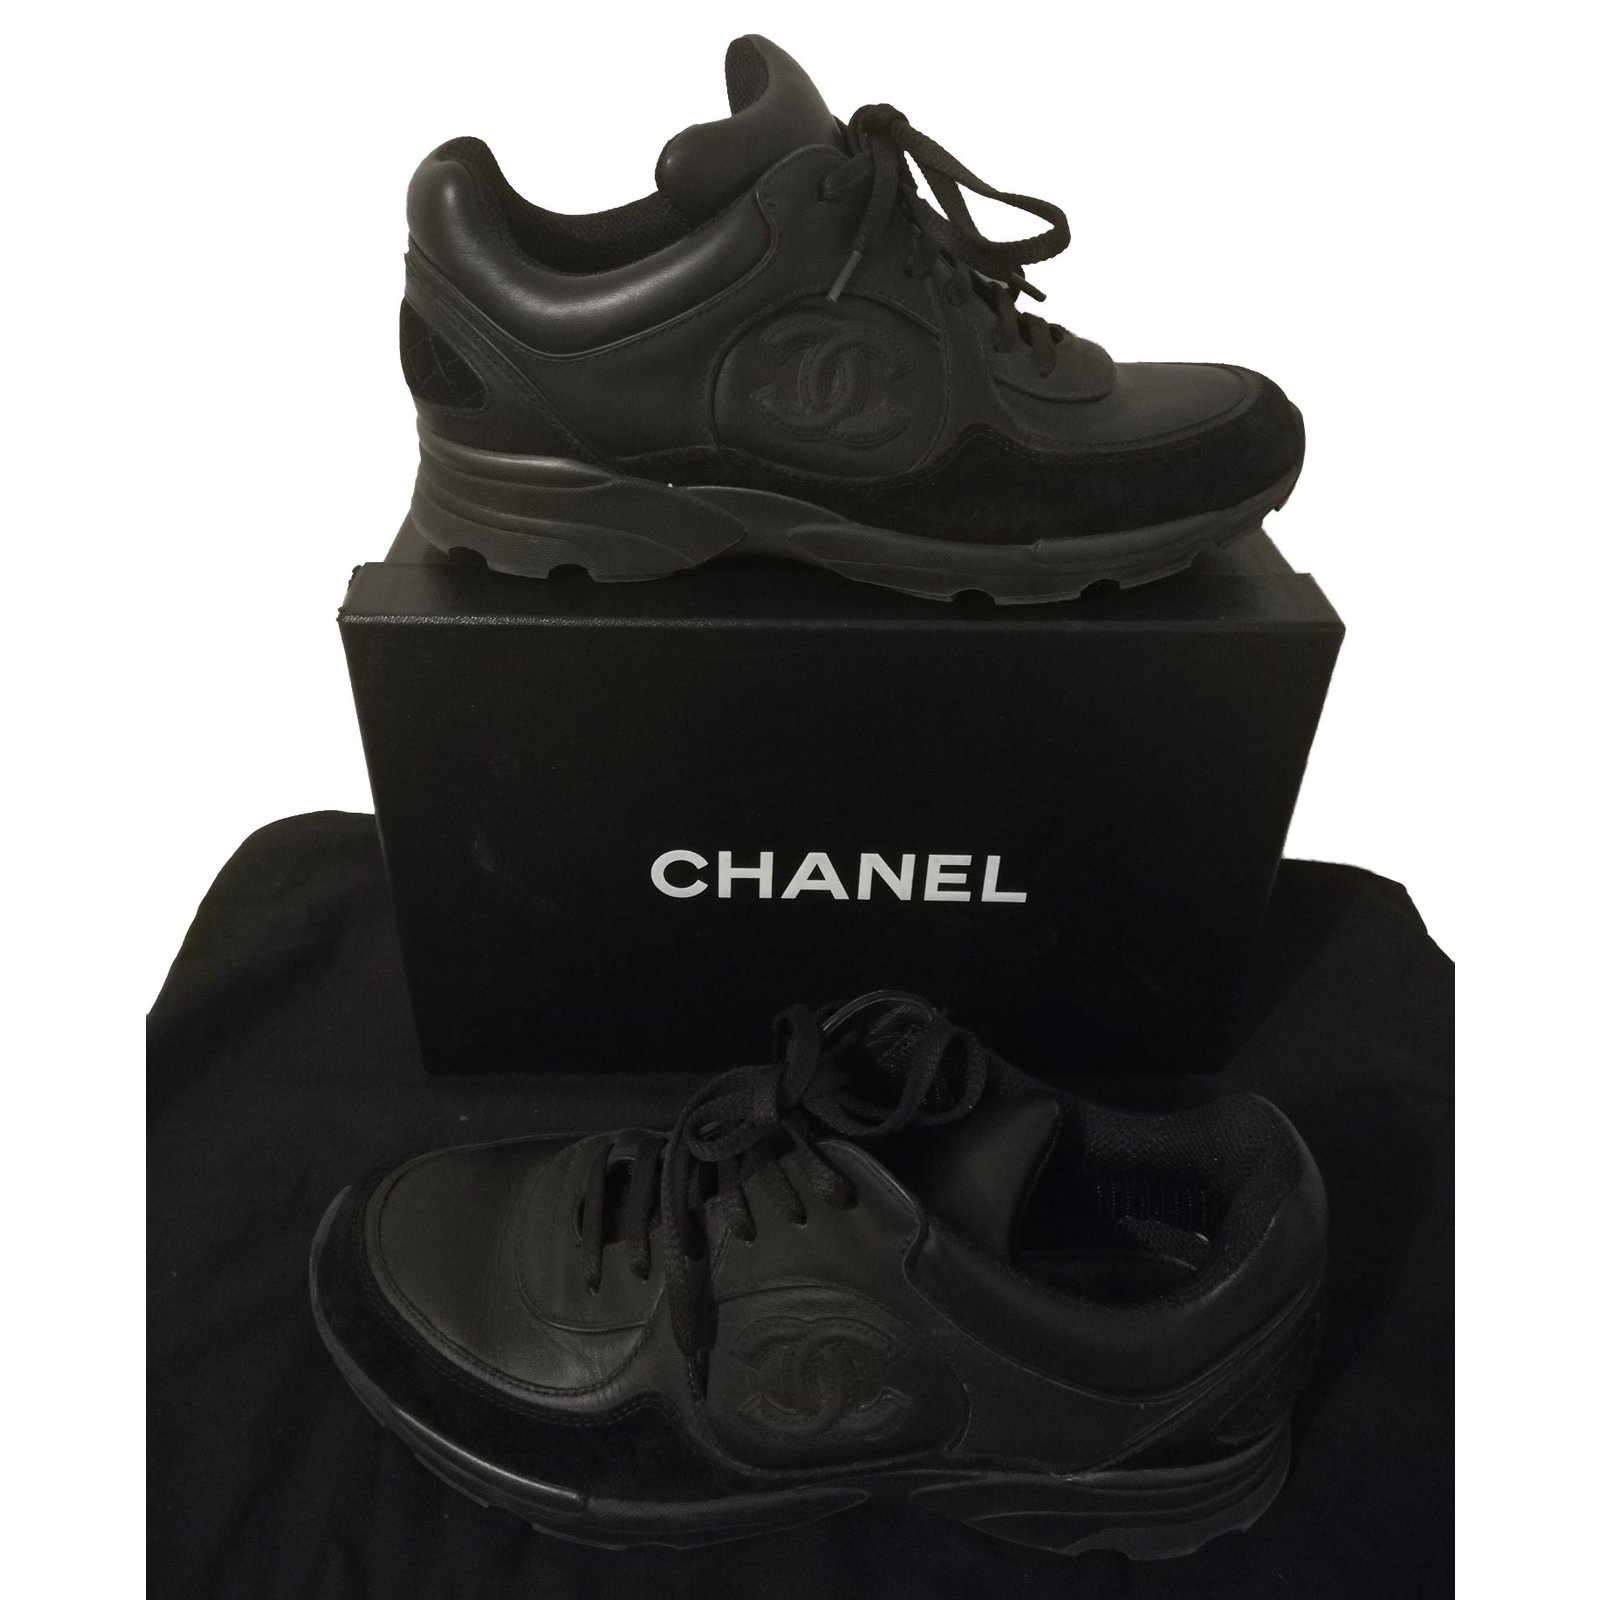 Chanel sneakers Sneakers Leather Black